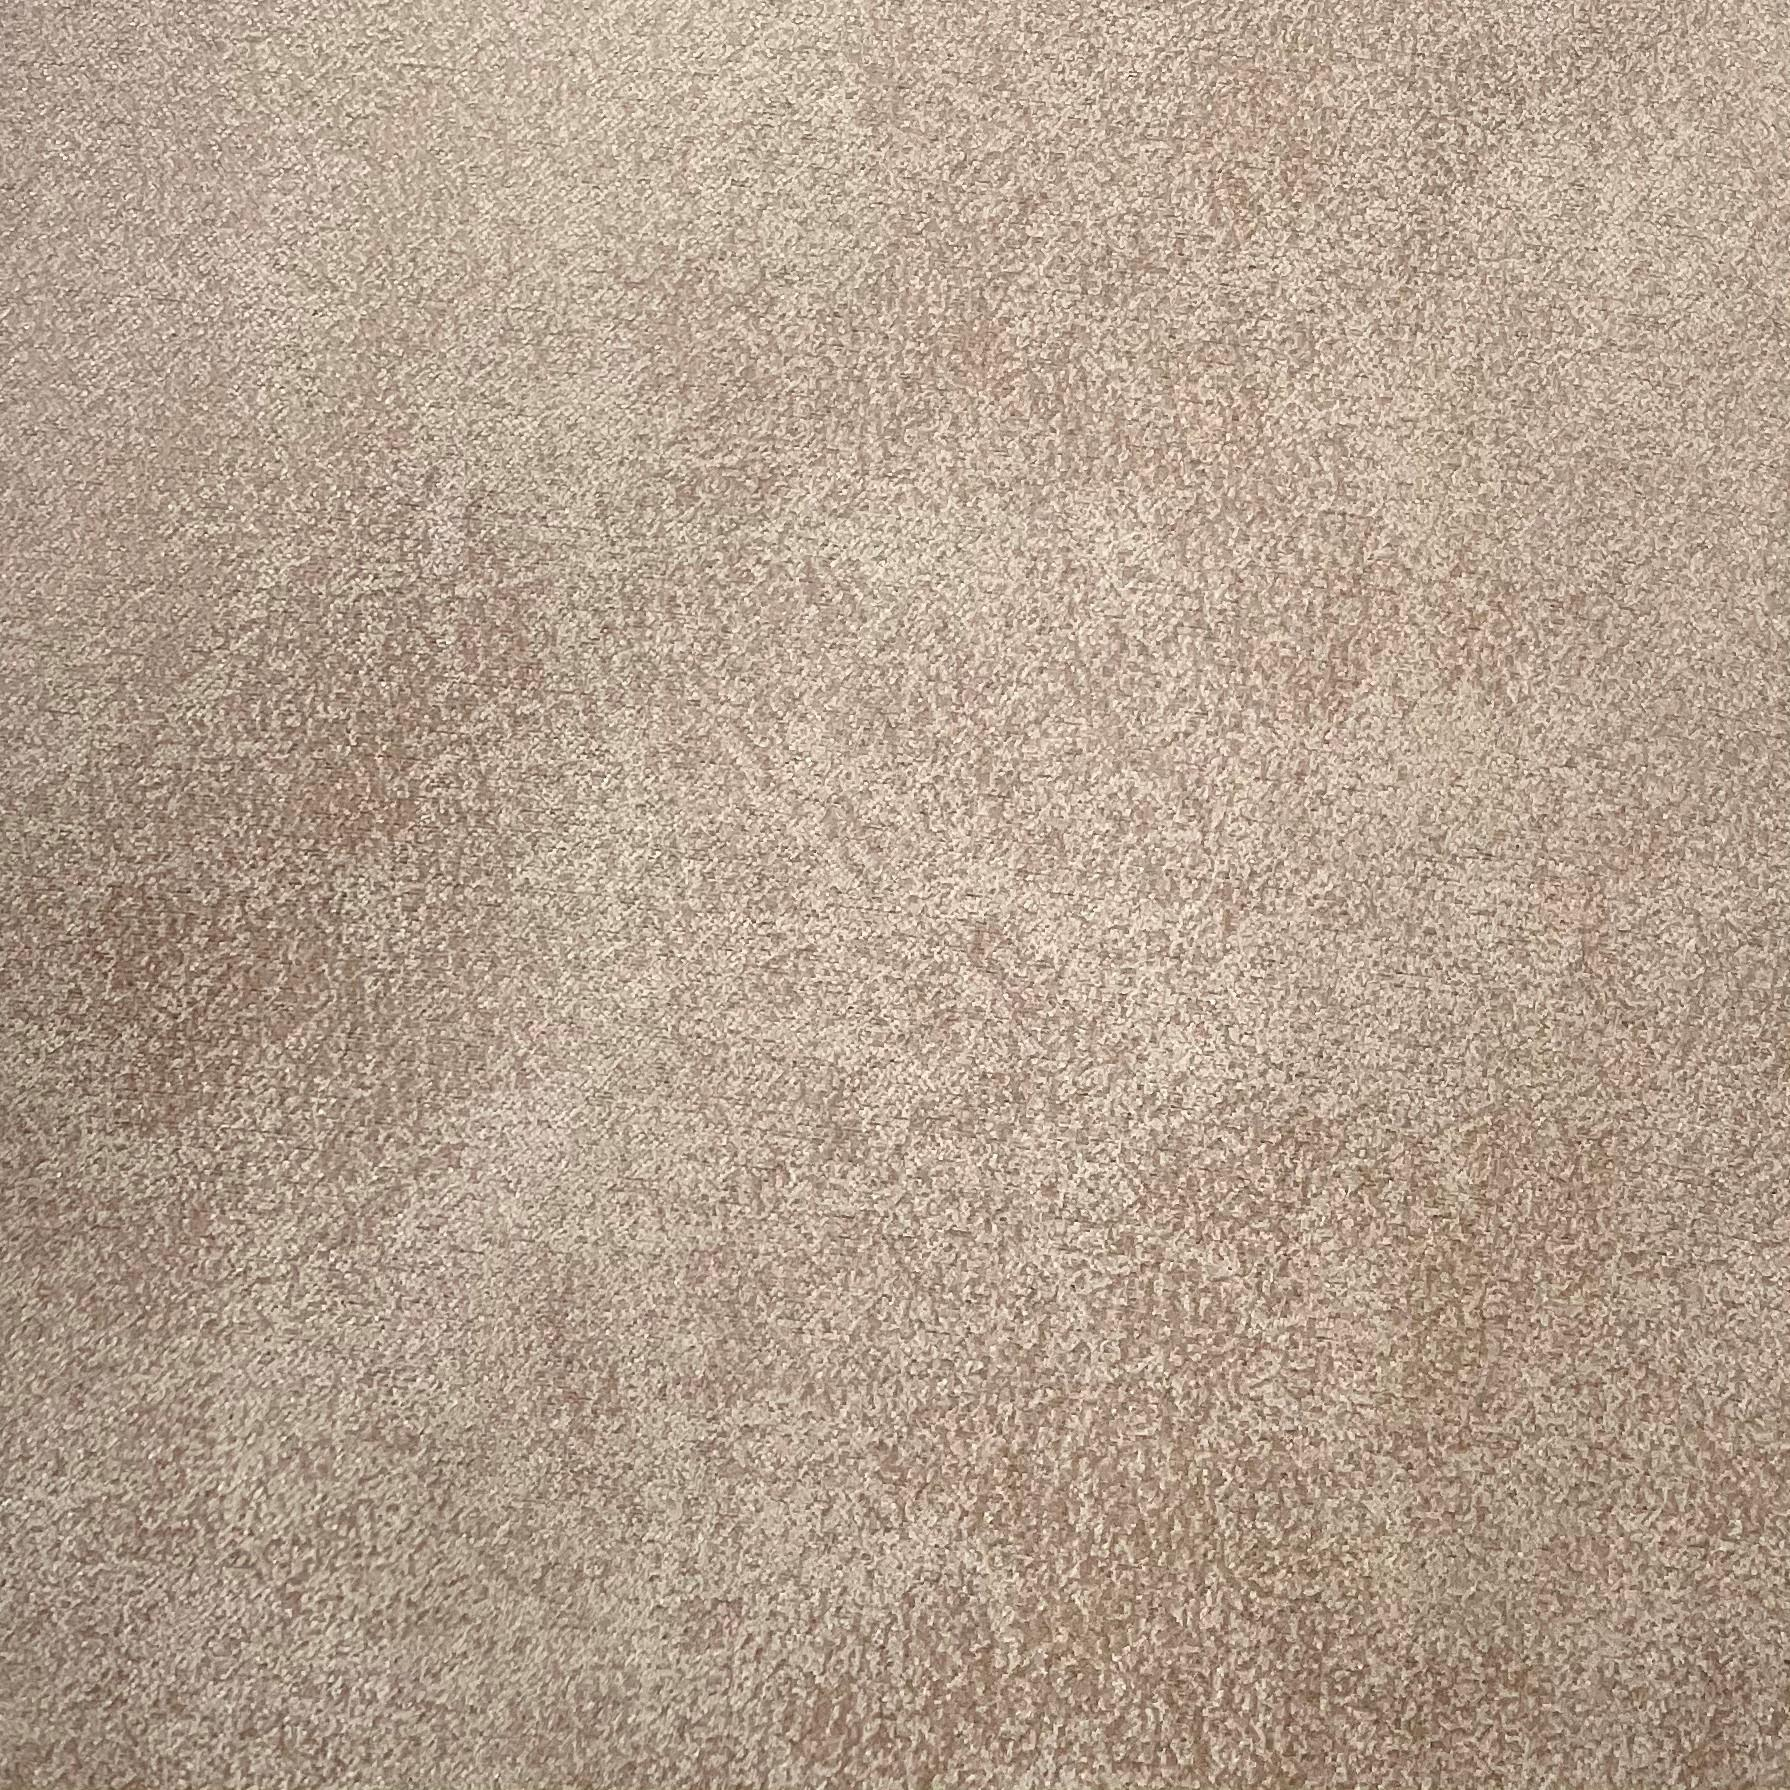 thumbnail 5 - AGED BROWN DISTRESSED ANTIQUED SUEDE FAUX LEATHER LEATHERETTE UPHOLSTERY FABRIC